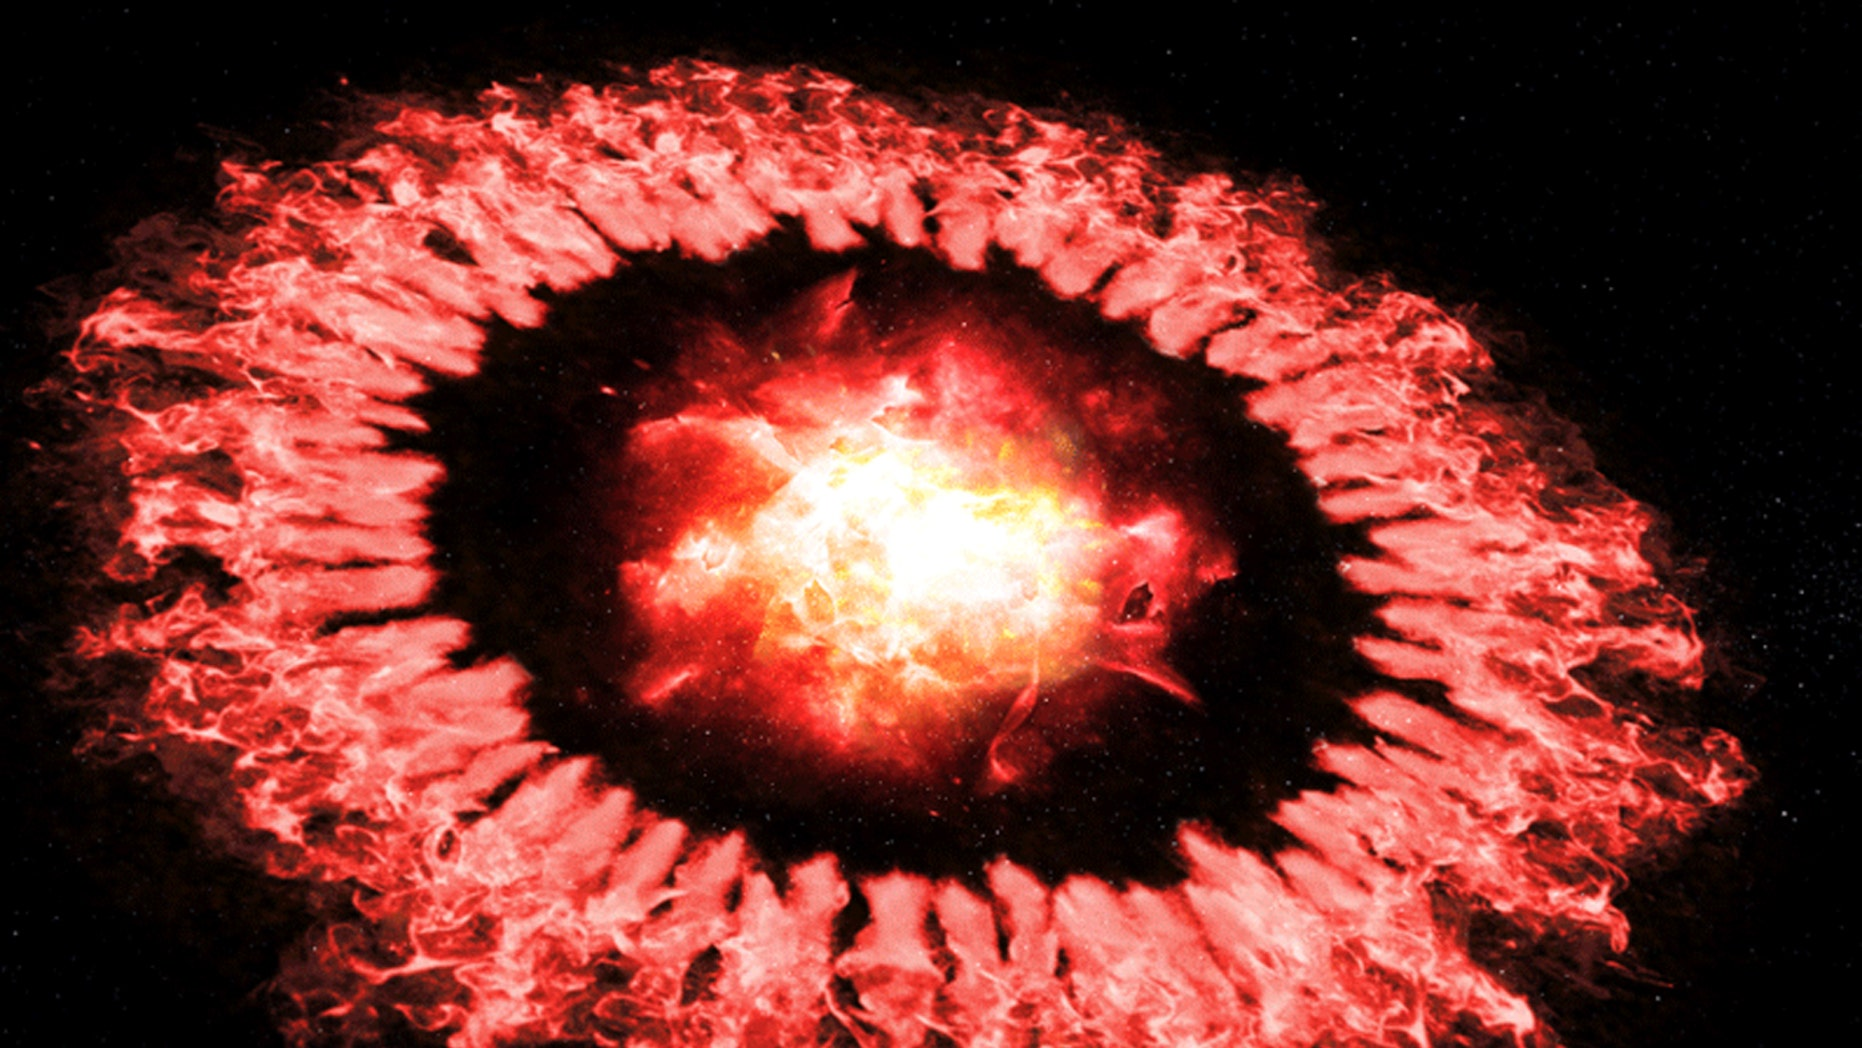 The artist's concept depicting Supernova 1987A, as a powerful explosion wave, passes through the outer ring and destroys most of the dust until dust re-emerges or grows rapidly